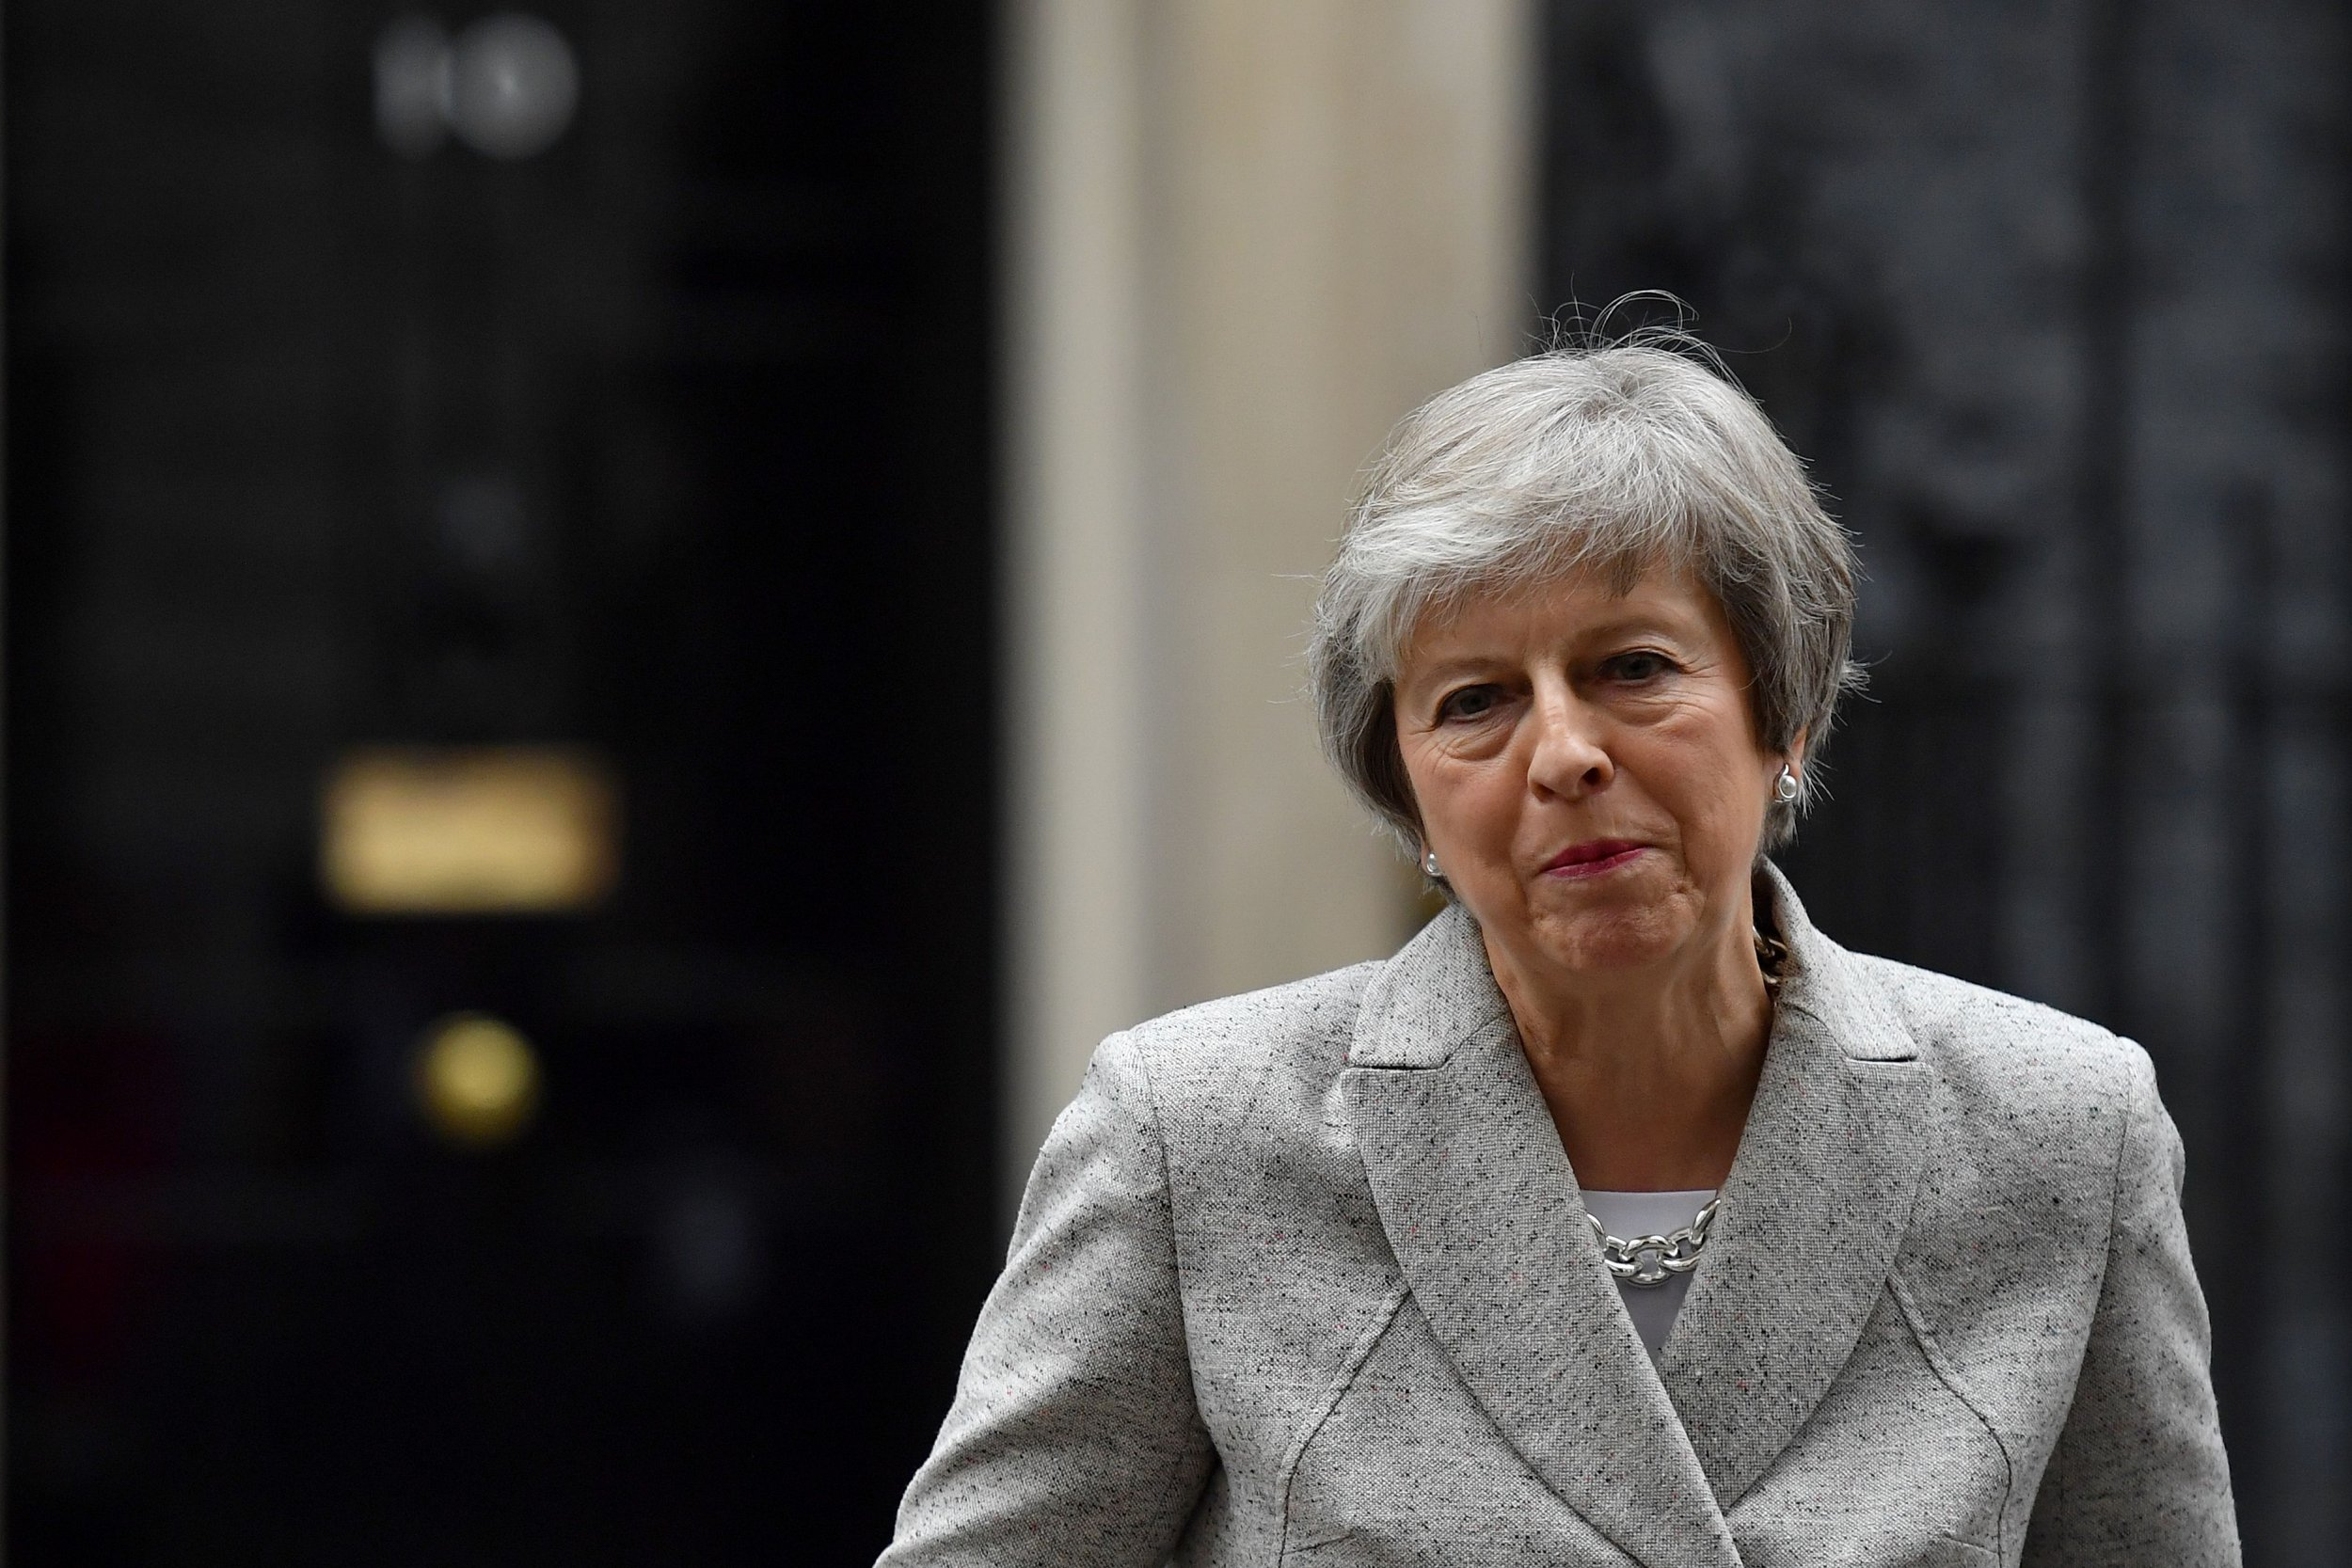 """Britain's Prime Minister Theresa May gives a statement outside 10 Downing Street in central London on November 22, 2018, following the announcement of a draft deal on post-Brexit trade ties with the EU. - British Prime Minister Theresa May was briefing her cabinet on a draft deal on post-Brexit trade ties with the EU before making a statement to MPs on Thursday afternoon, officials said. """"The prime minister will be making a statement to the House (of Commons) later today,"""" leader of the House of Commons Andrea Leadsom said earlier Thursday, after the deal was announced in Brussels. (Photo by Ben STANSALL / AFP)BEN STANSALL/AFP/Getty Images"""